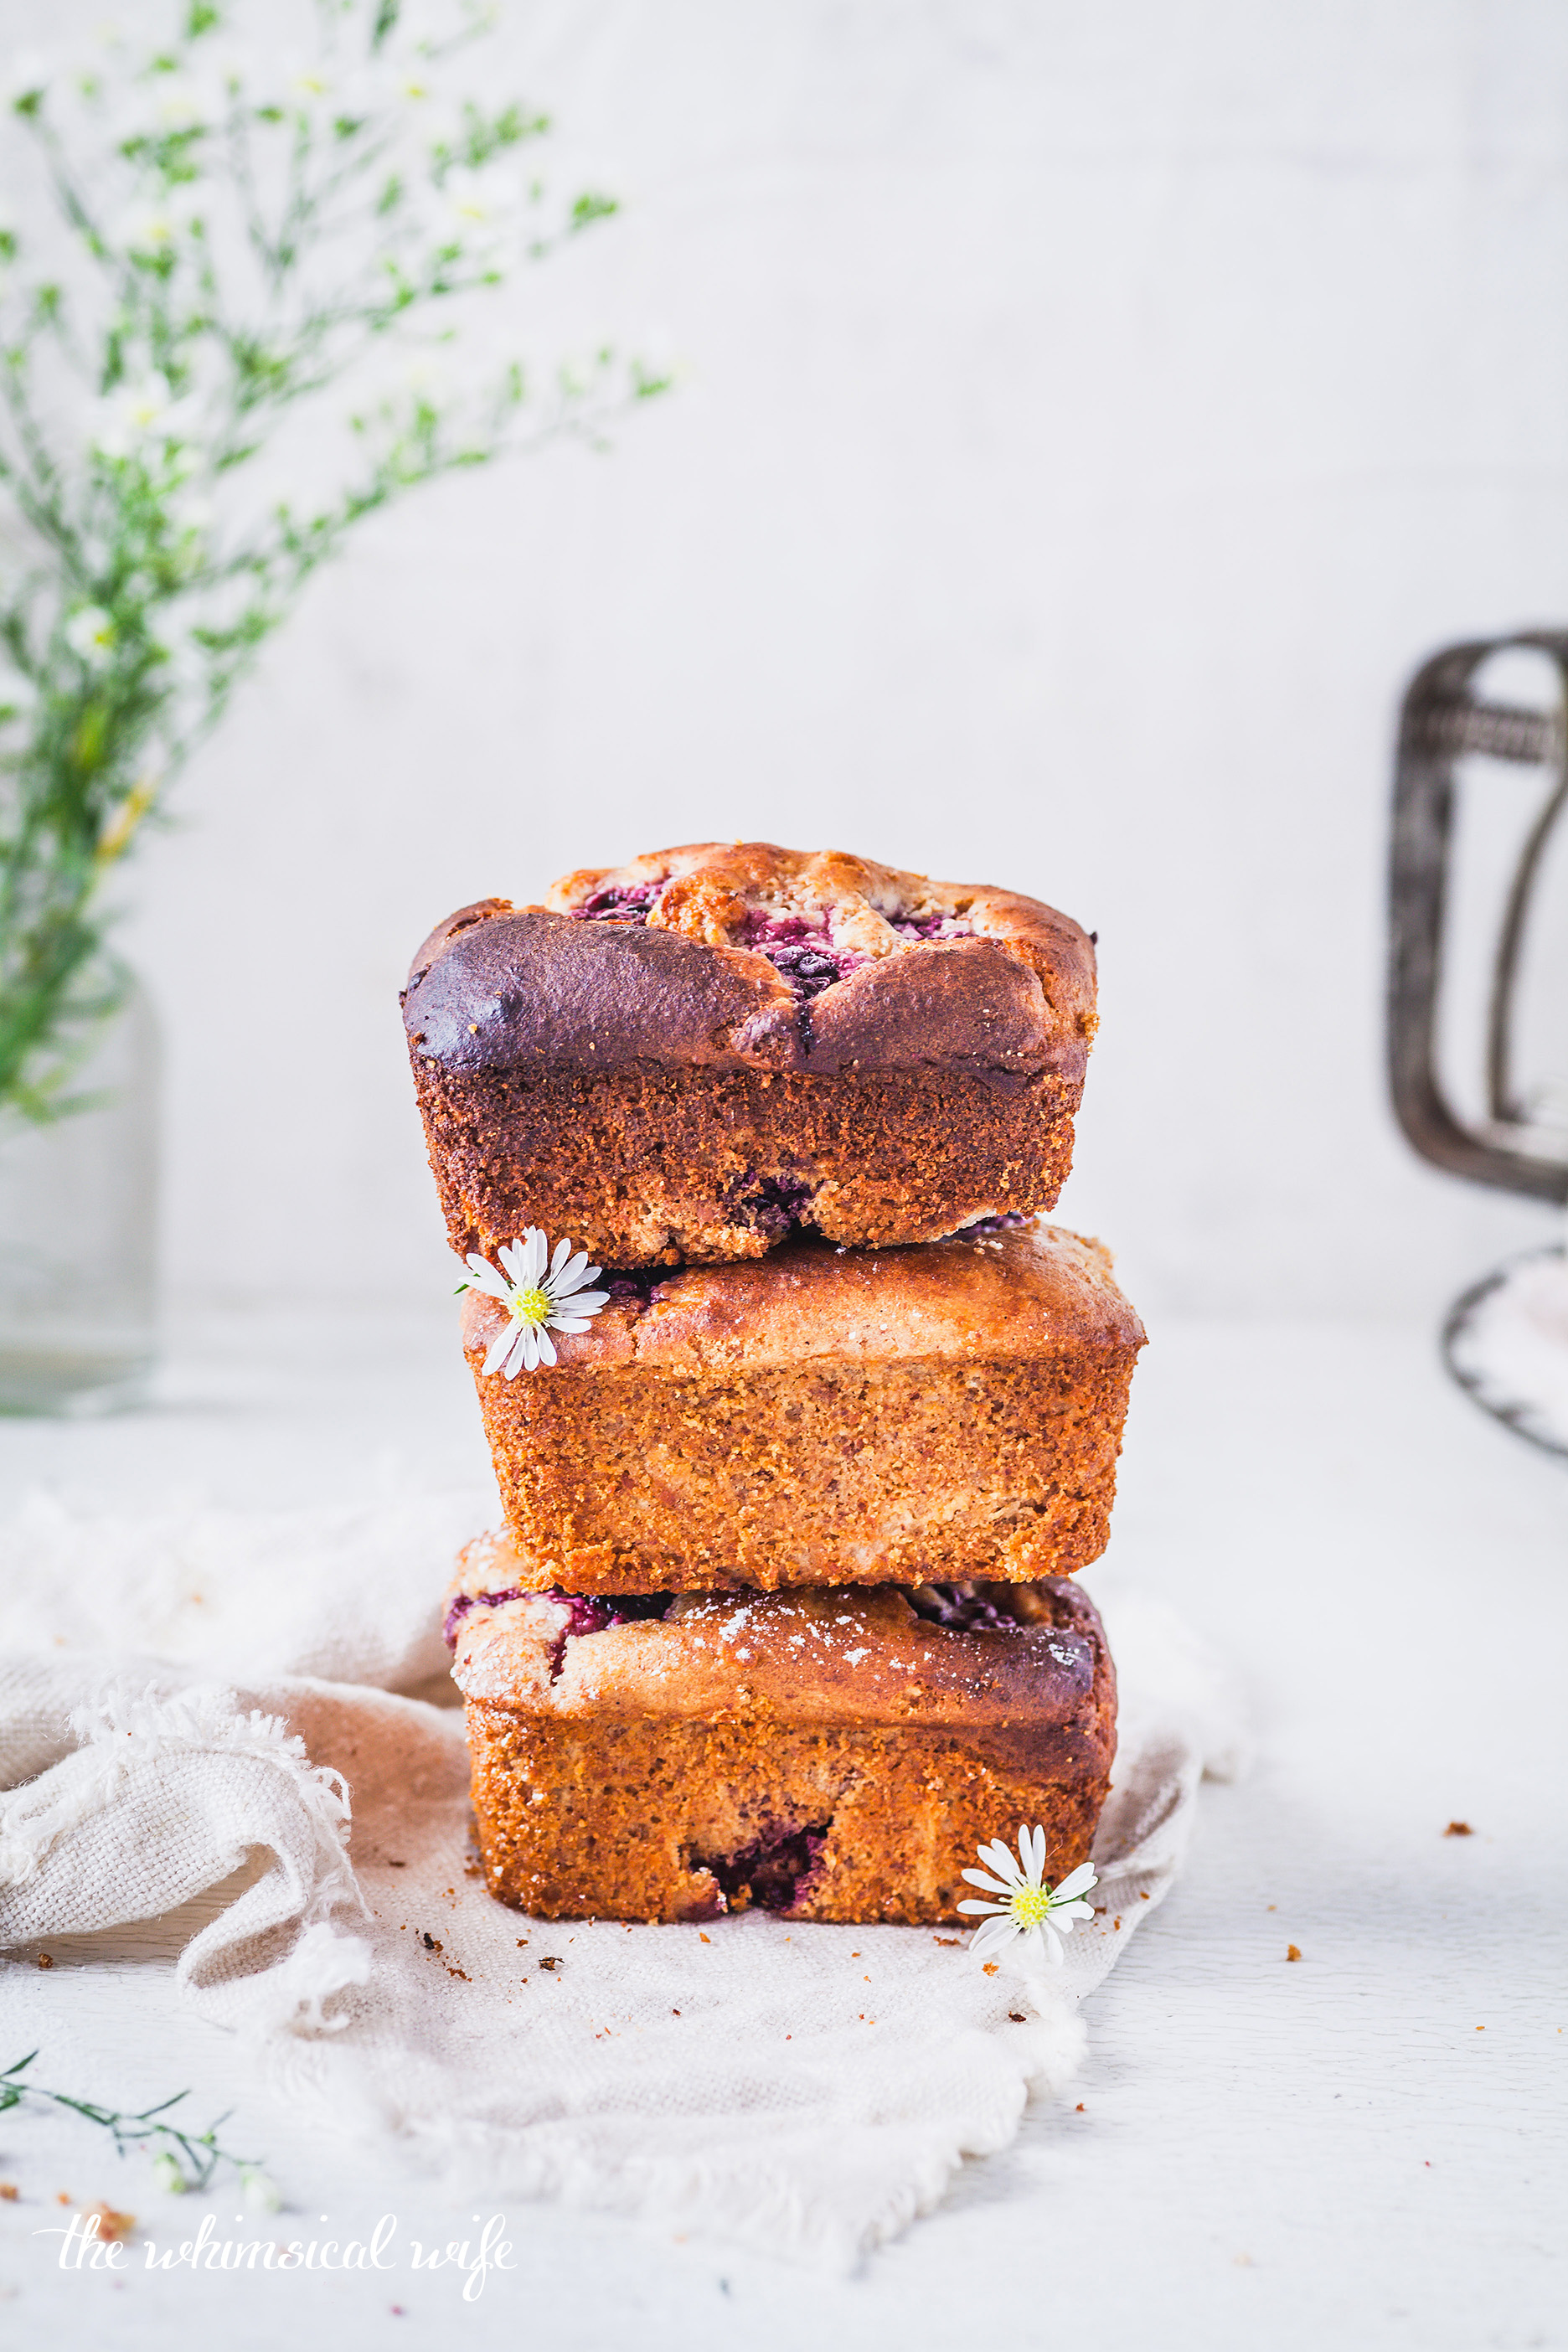 30 Cakes In 30 Days | 3. Mini Blackberry & Apple Loaf {GF, DF, Refined Sugar Free } | The Whimsical Wife